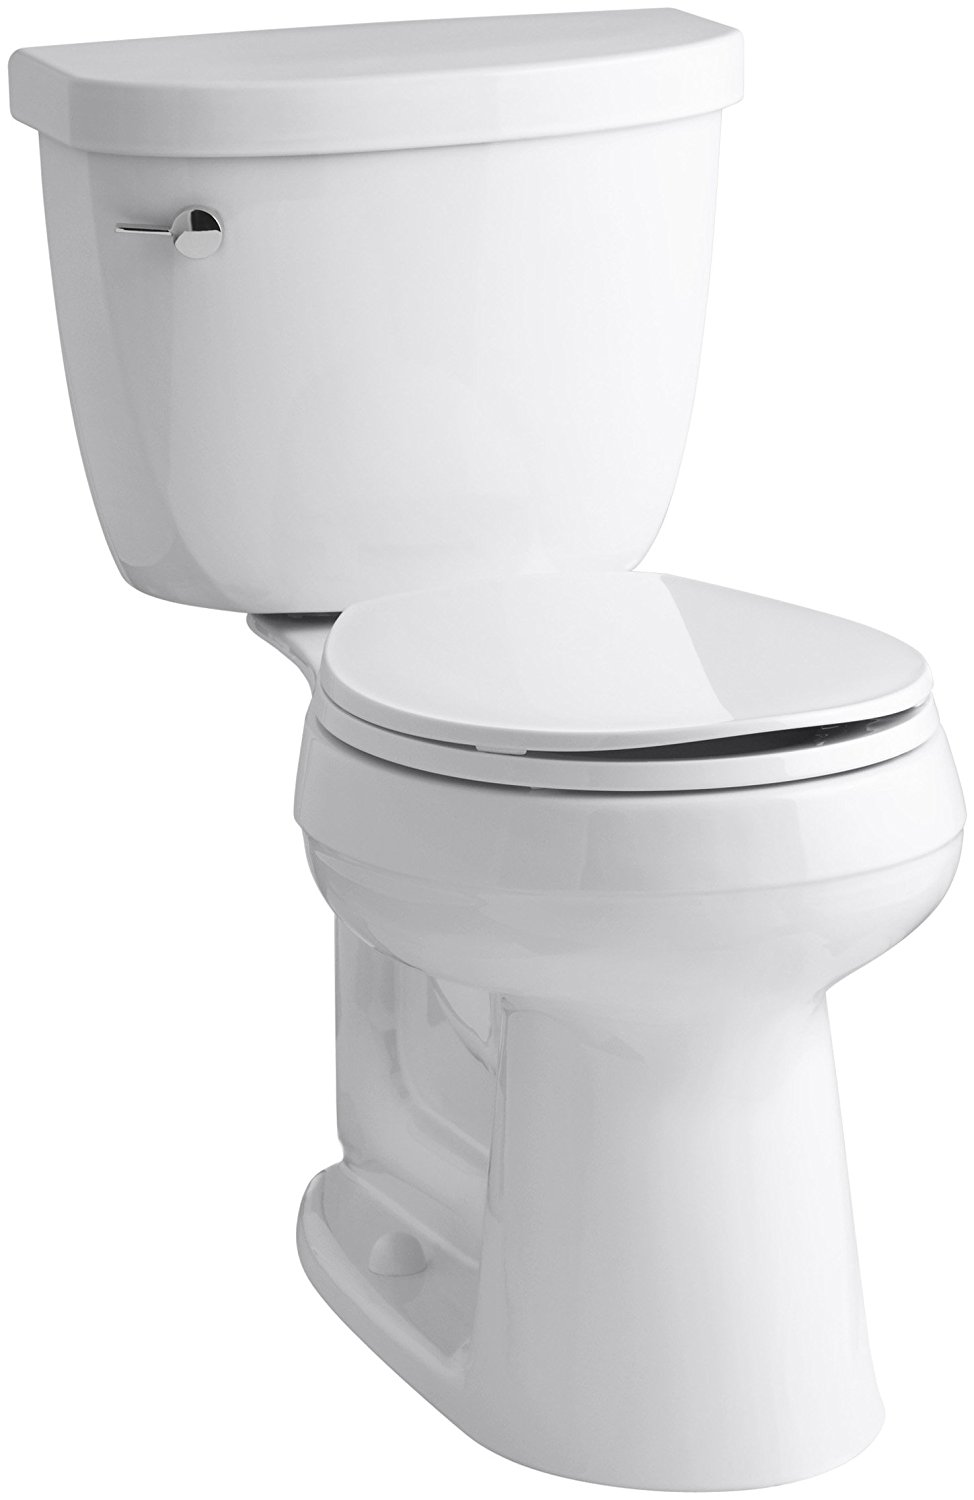 KOHLER K-3887-0 Cimarron Comfort Height Two-Piece Round-Front 1.28 GPF Toilet with AquaPiston Flush Technology and Left-Hand Trip Lever, White